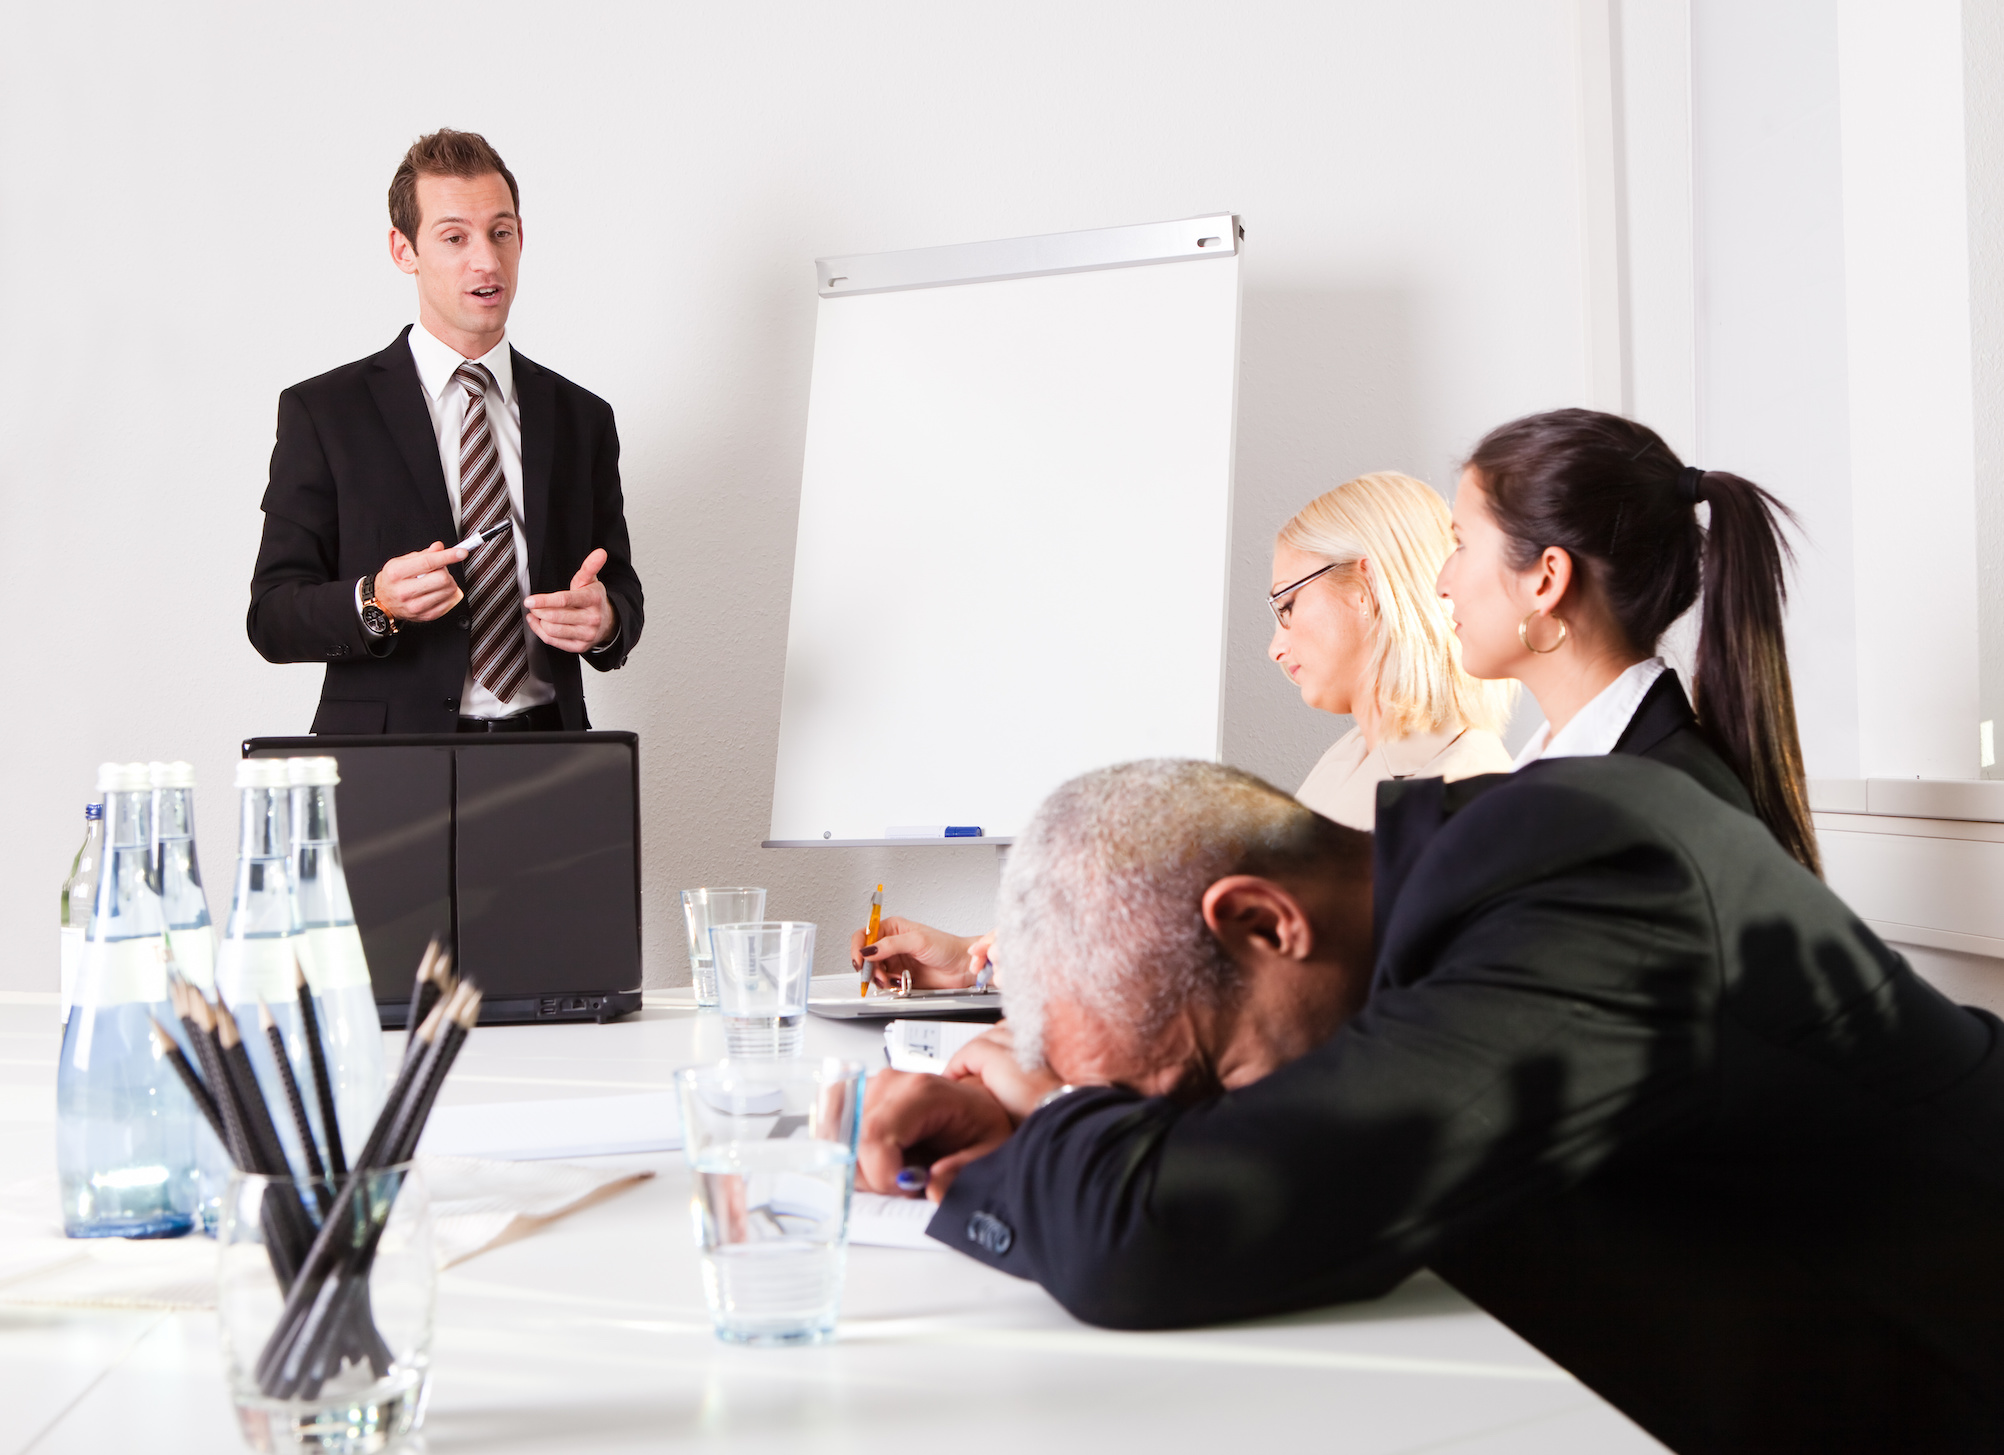 training blog - 4 tell-tale signs you're a teller not a trainer